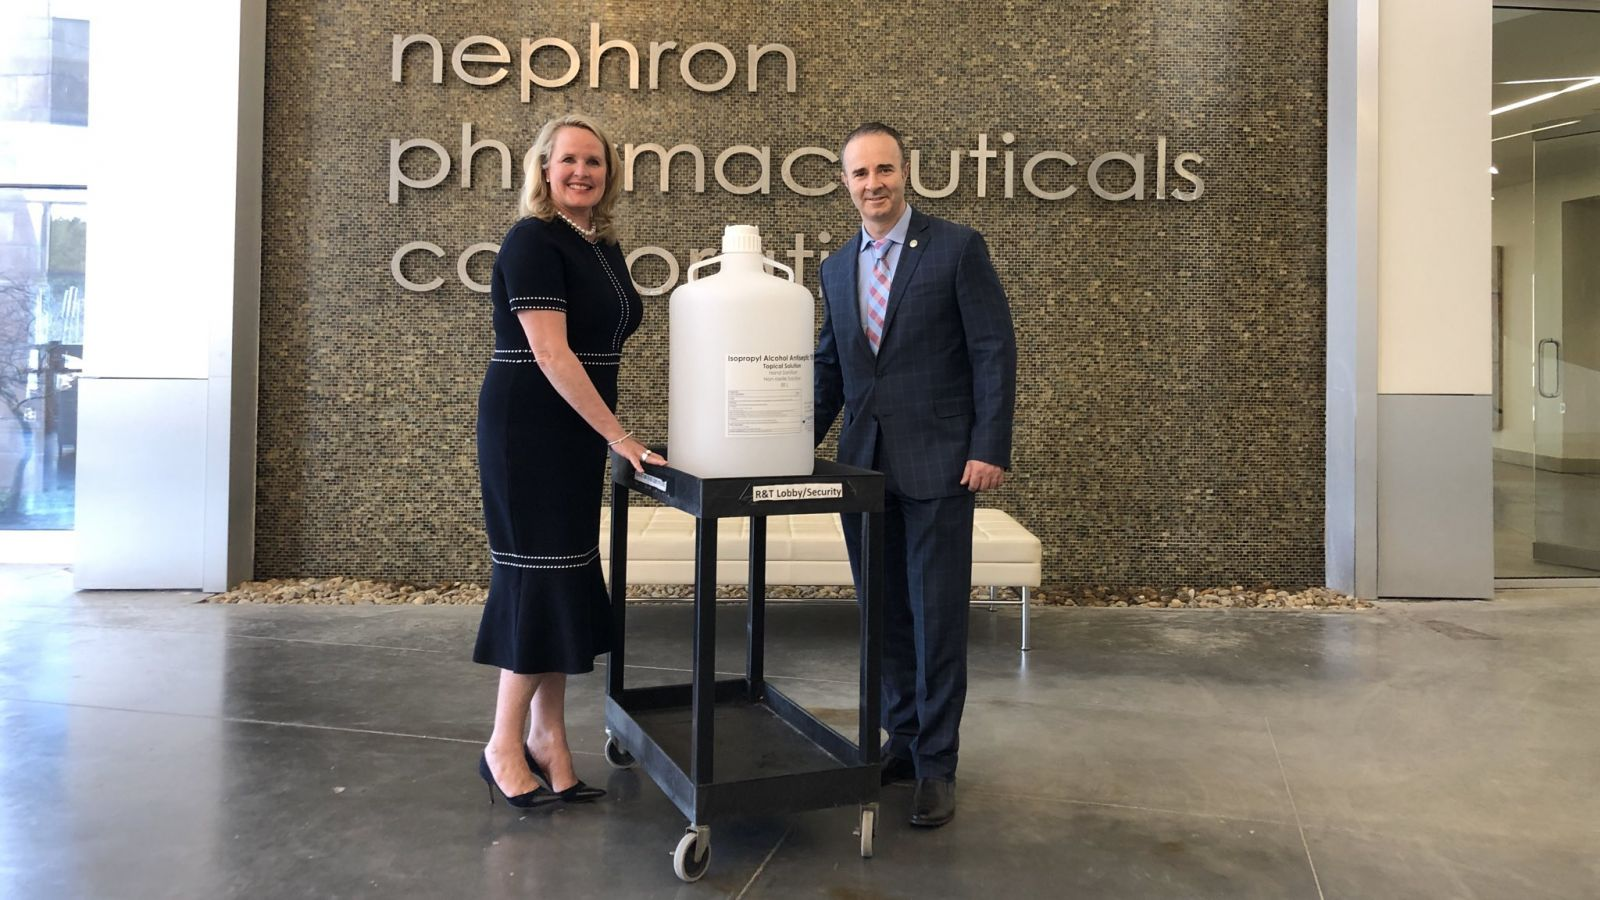 Nephron president and CEO Lou Kennedy (left) donated 50 liters of hand sanitizer made at the West Columbia respiratory medication manufacturer to the William Jennings Bryan Dorn Veterans Affairs Medical Center. (Photo/Provided)